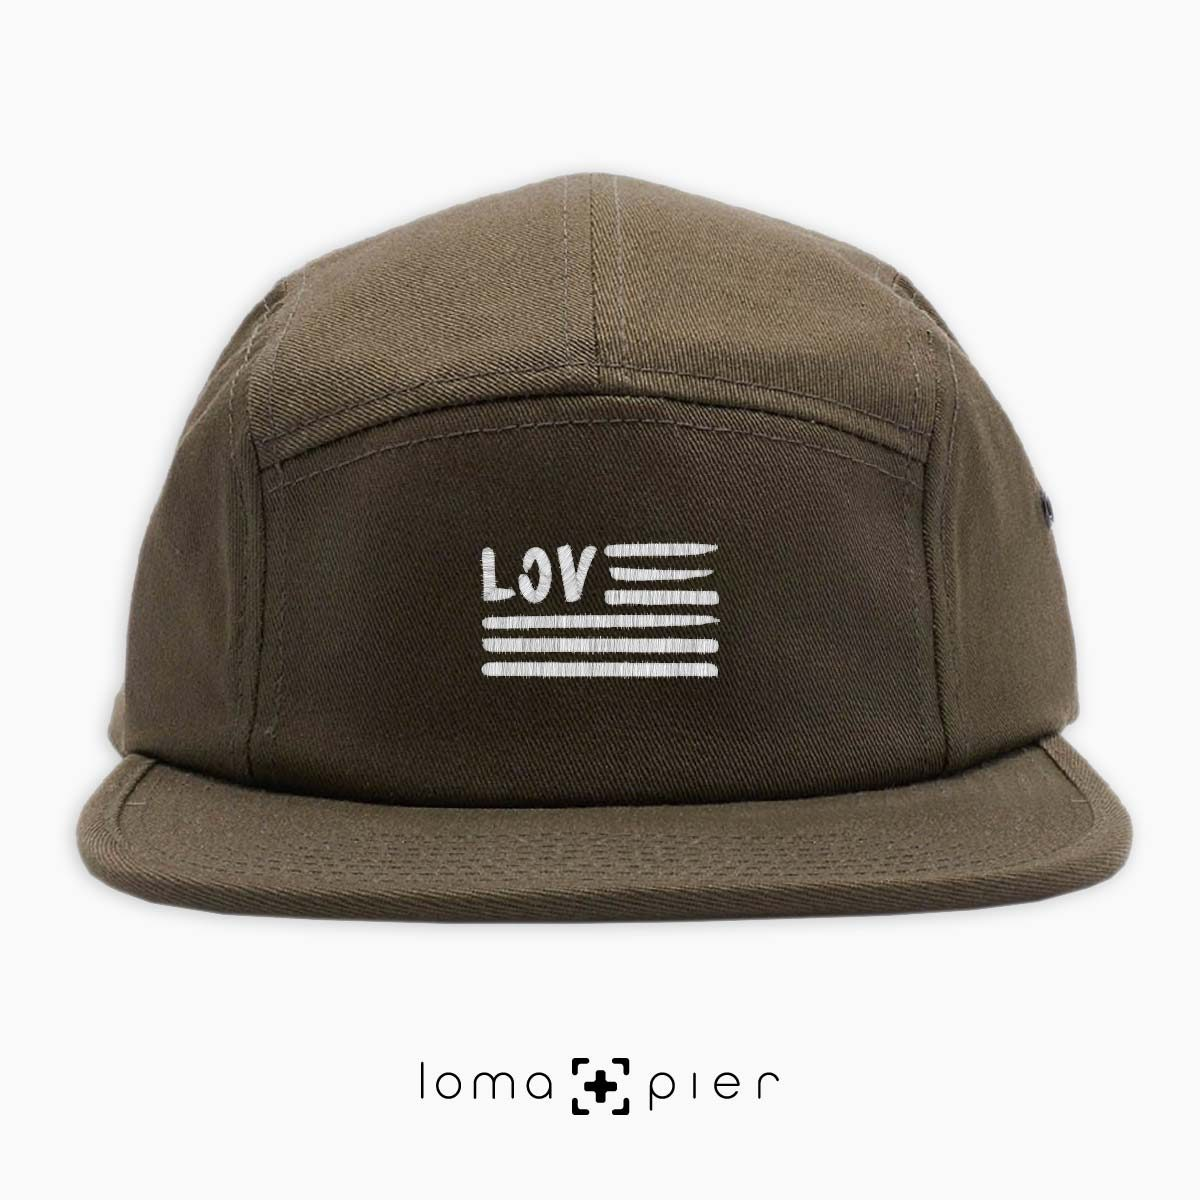 AMERICAN LOVE icon embroidered on an olive green cotton 5-panel hat with white thread by loma+pier hat store